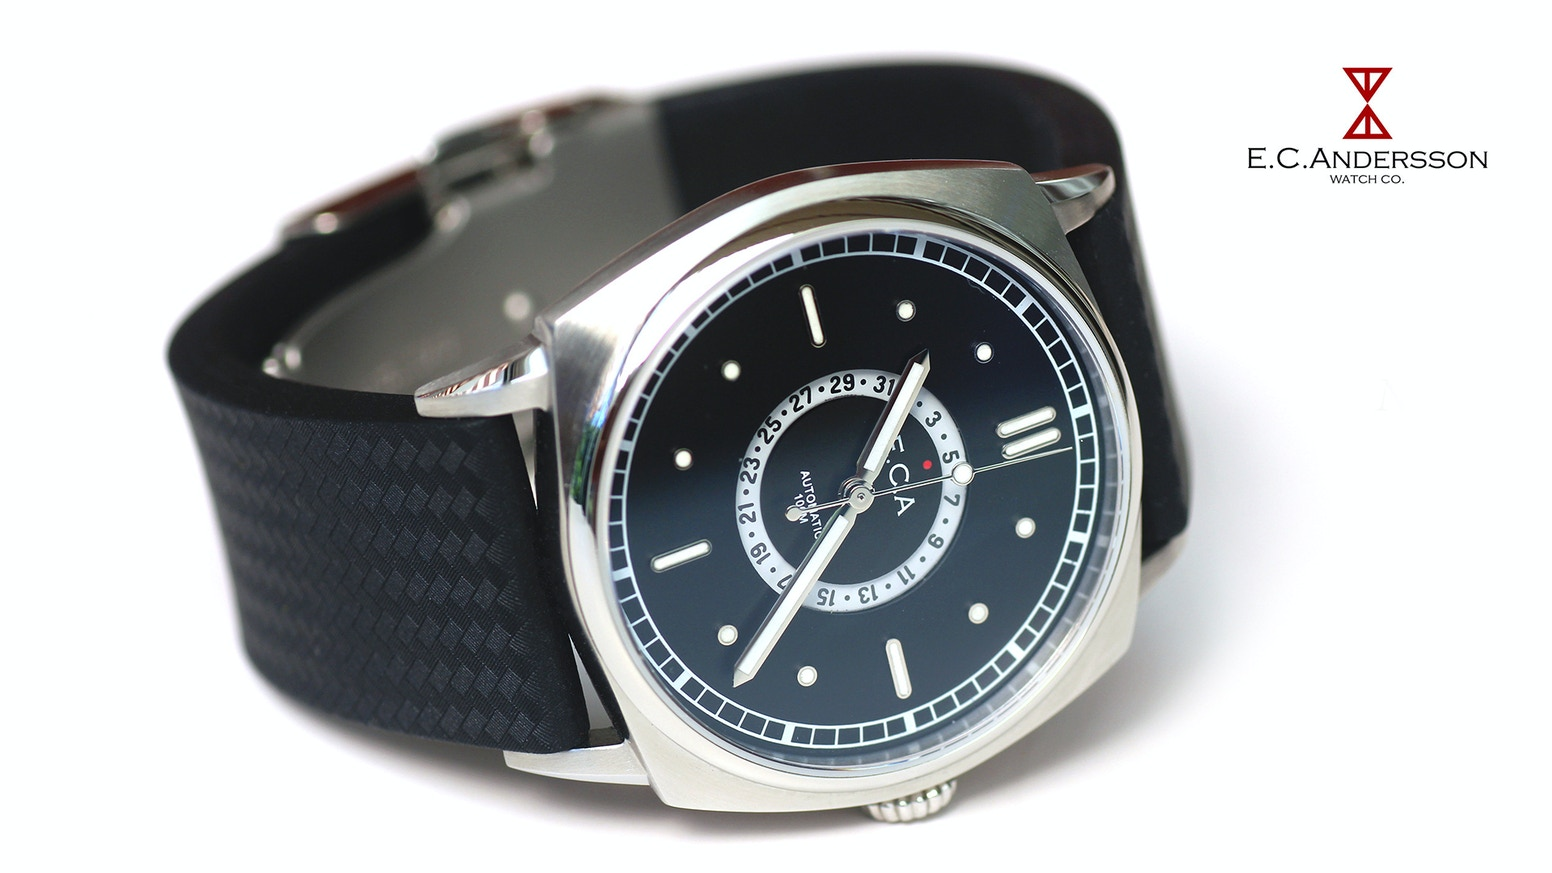 A quality watch to be used - Always